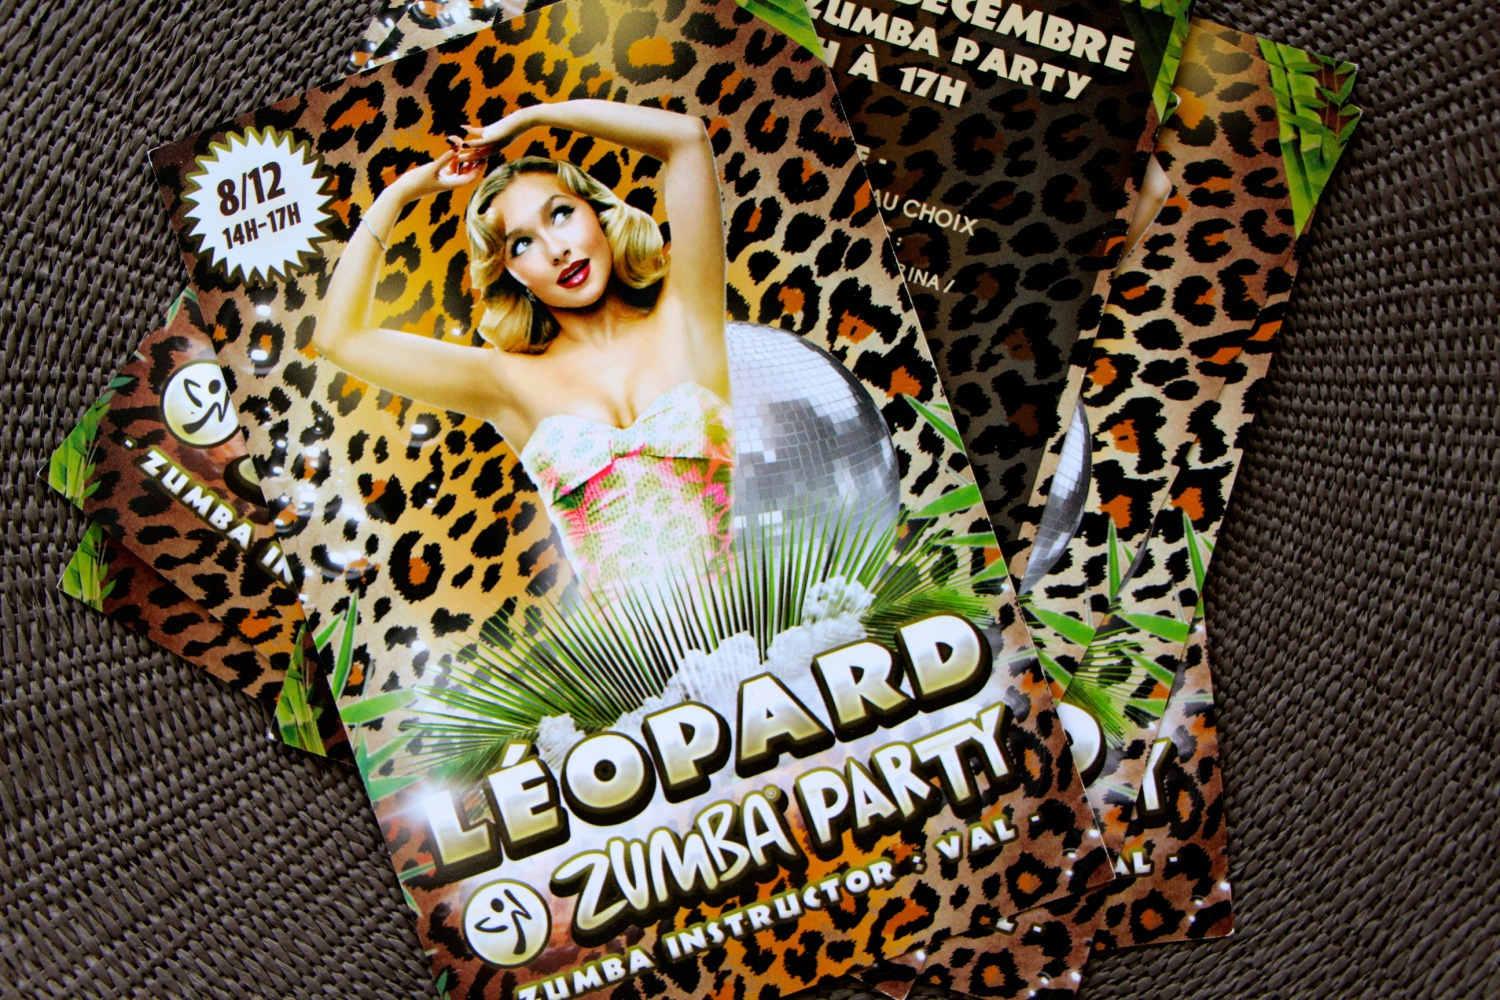 Flyer - Léopard Zumba Party